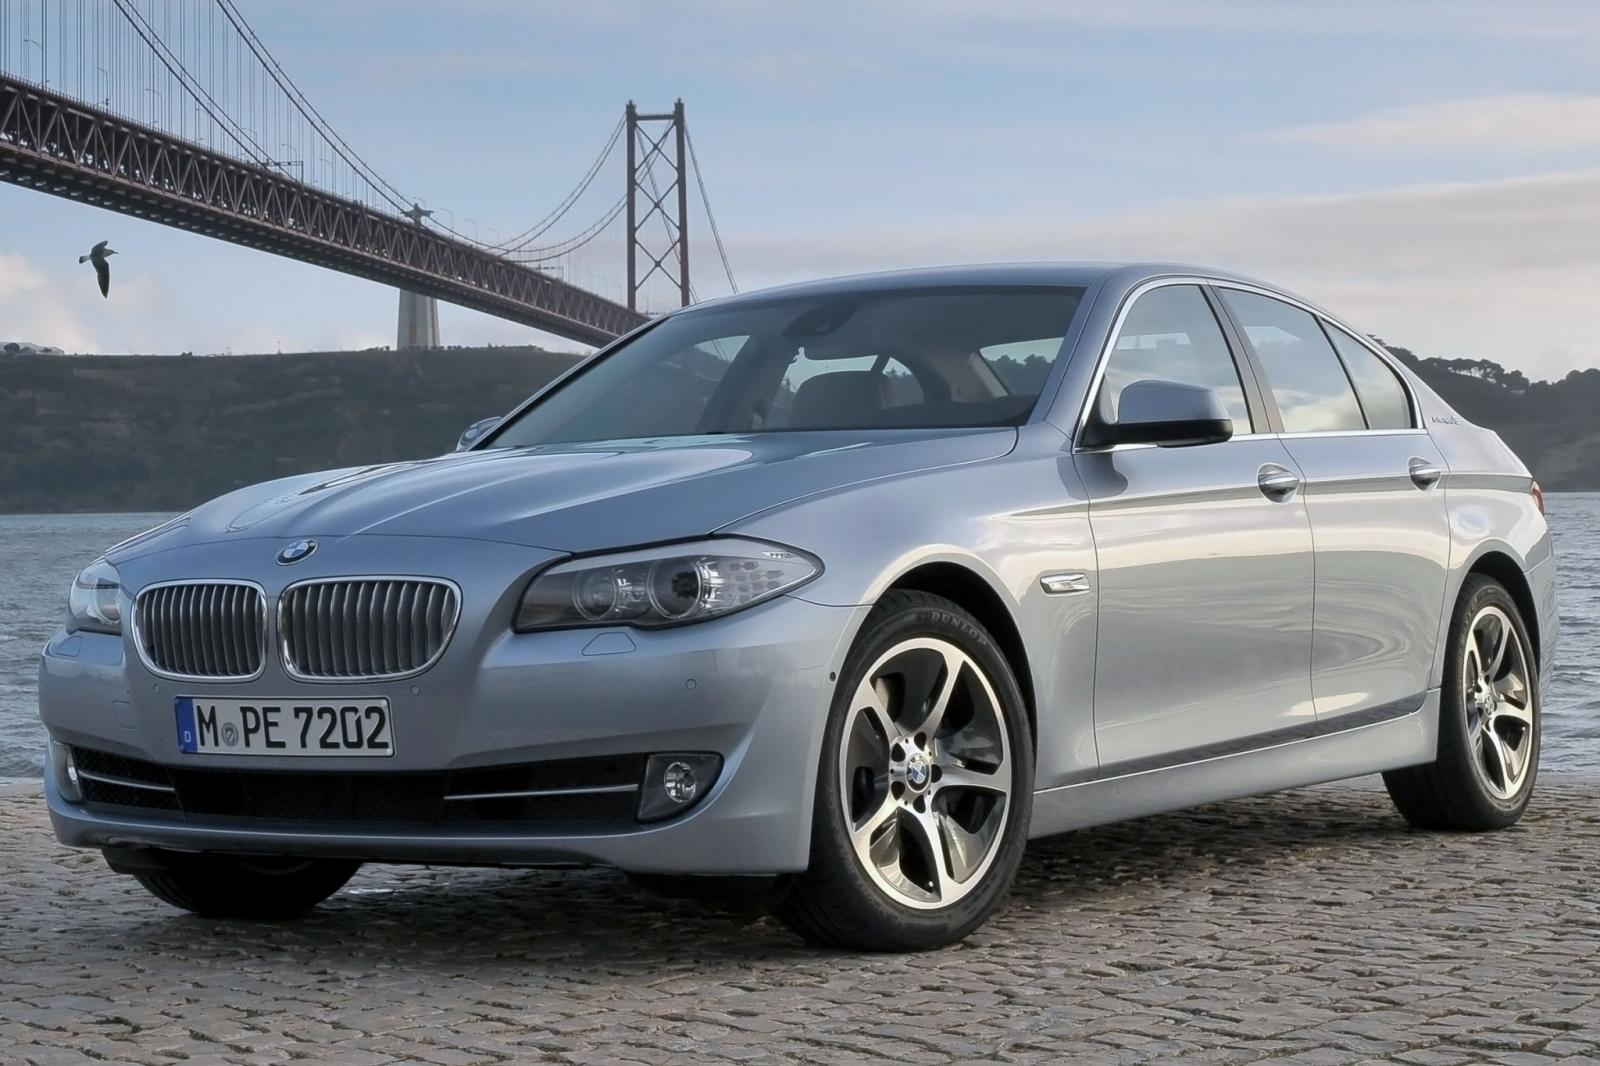 2013 bmw 5 series information and photos zombiedrive. Black Bedroom Furniture Sets. Home Design Ideas